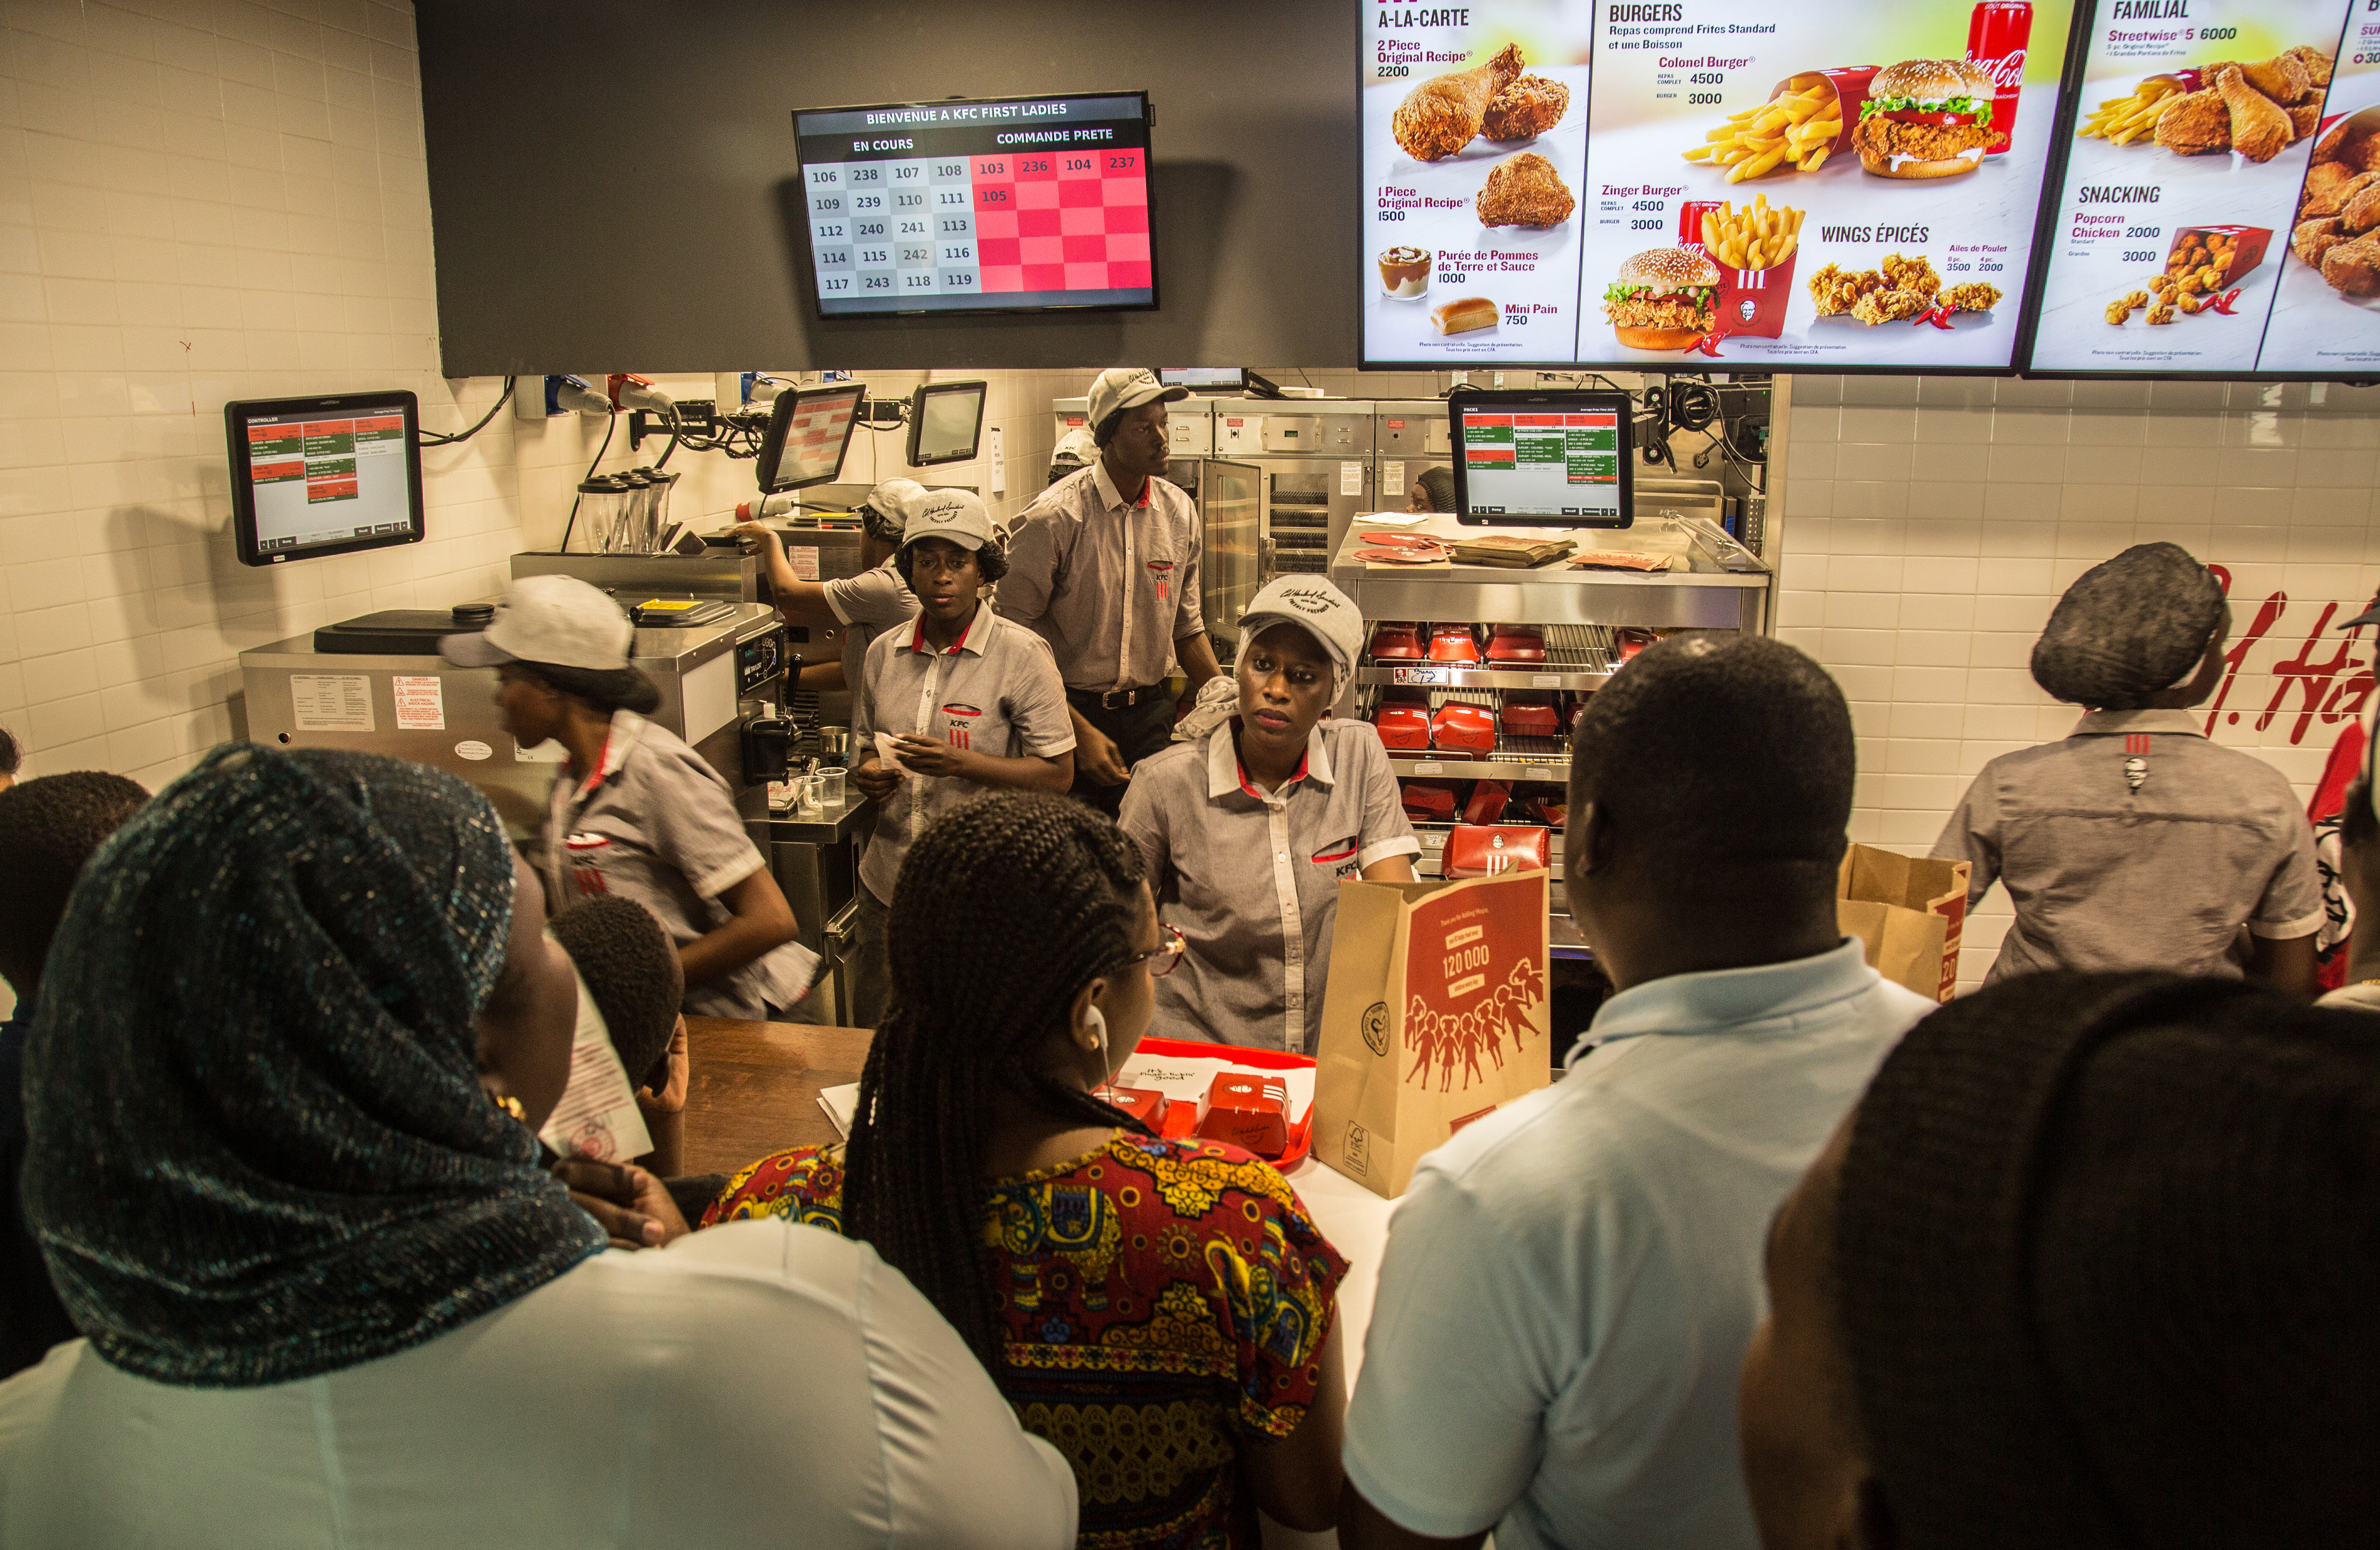 Staff members attend to customers in the new KFC location in Dakar, Senegal, on Oct. 24. MUST CREDIT: Photo for The Washington Post by Yagazie Emezi